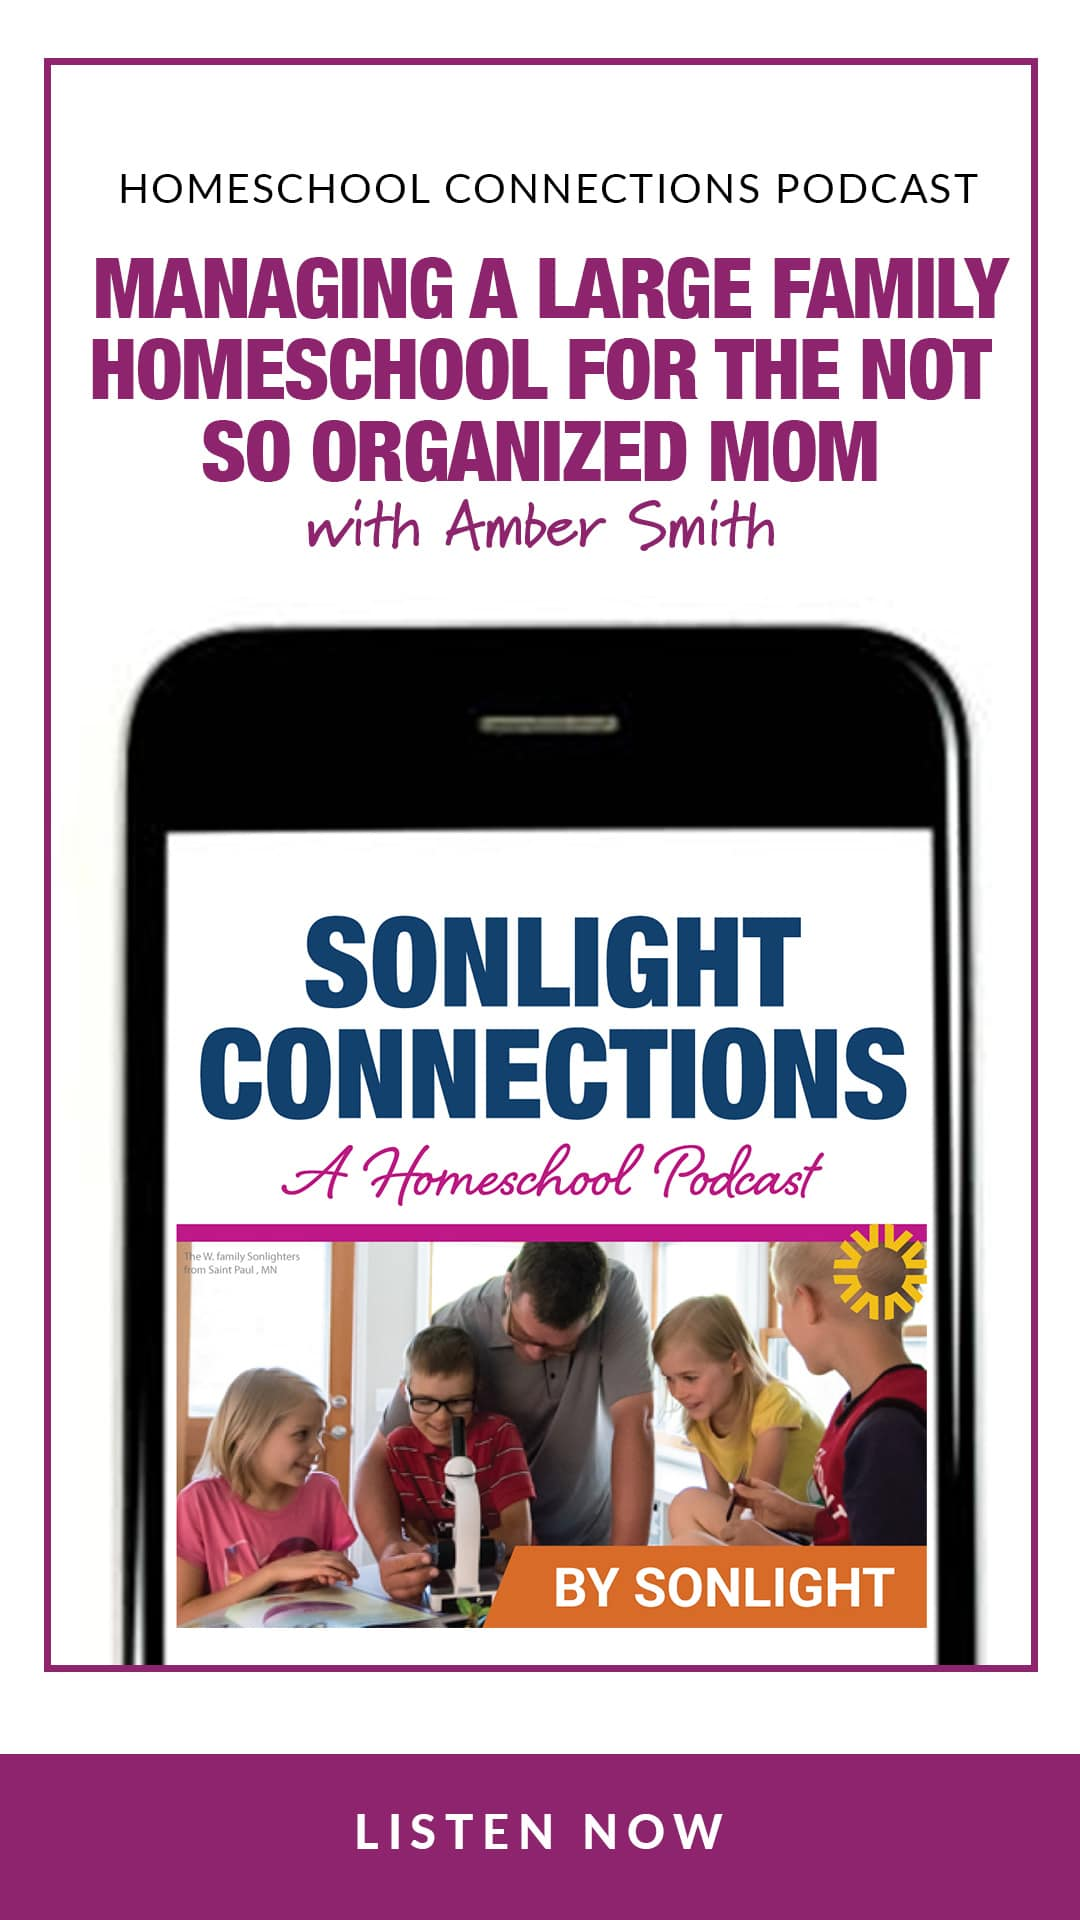 Managing a Large Family Homeschool for the Not So Organized Mom